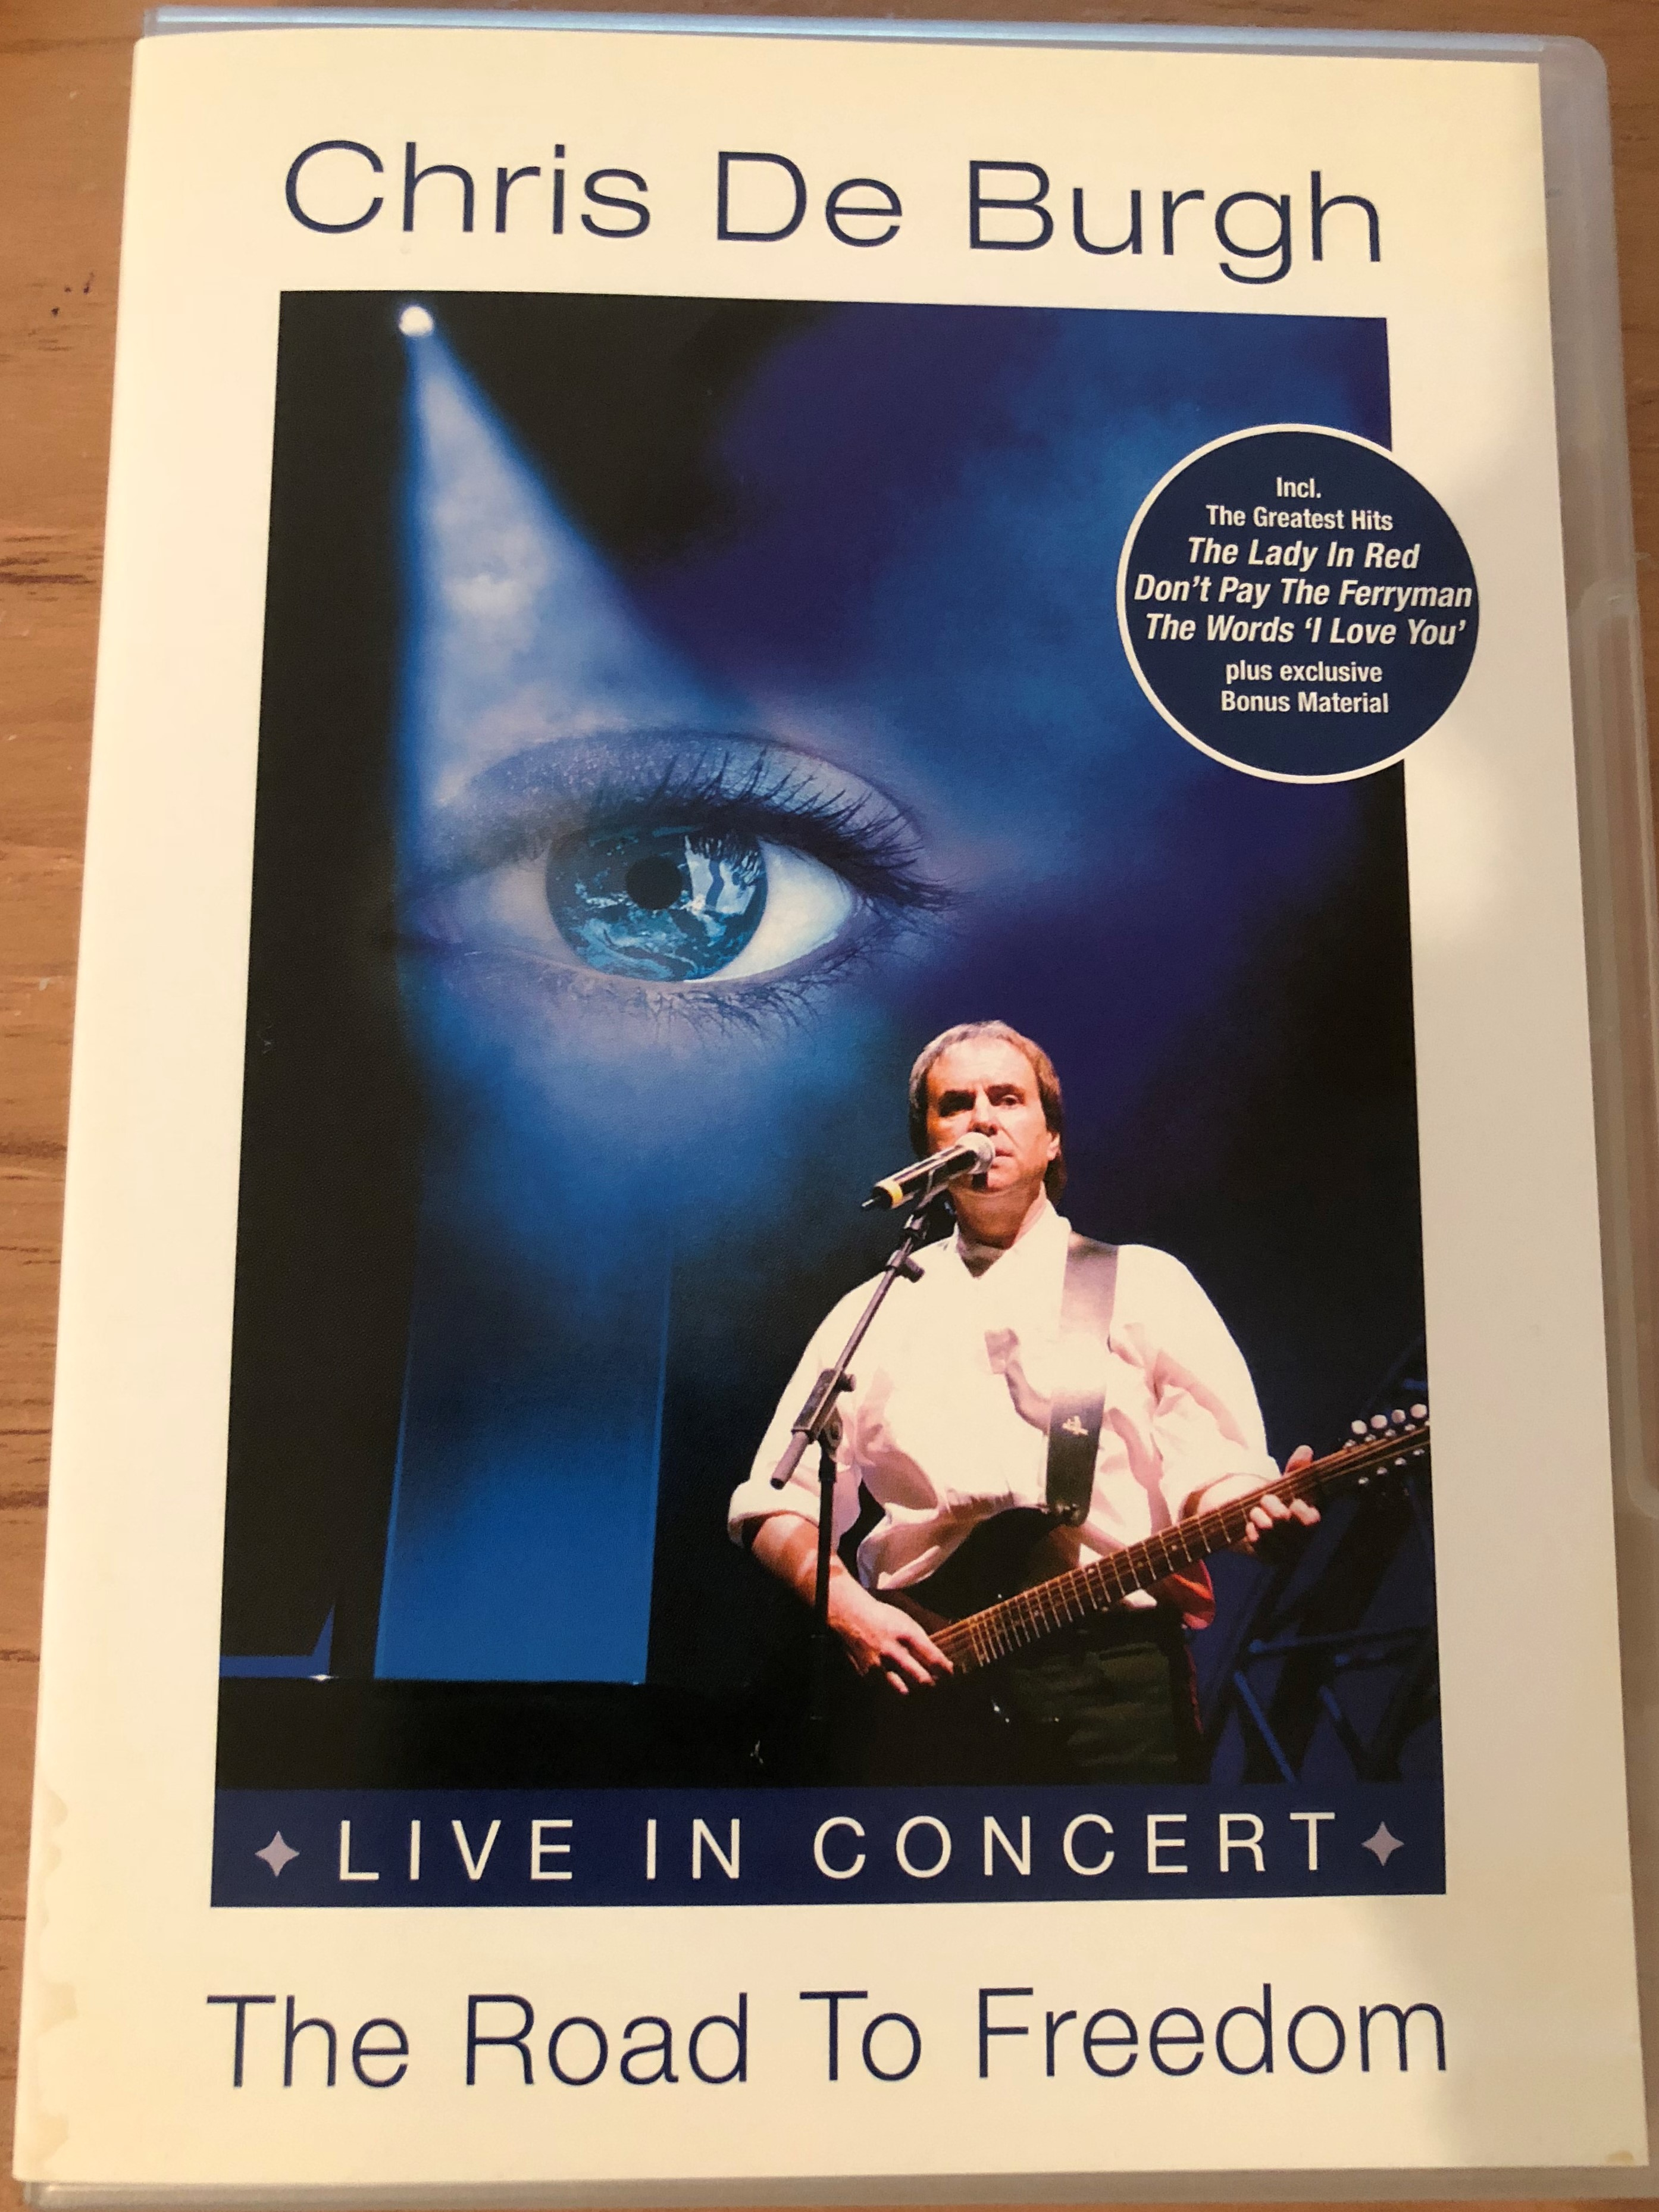 chris-burgh-the-road-to-freedom-dvd-2004-live-in-concert-recorded-2004-in-germany-edel-records-1-.jpg